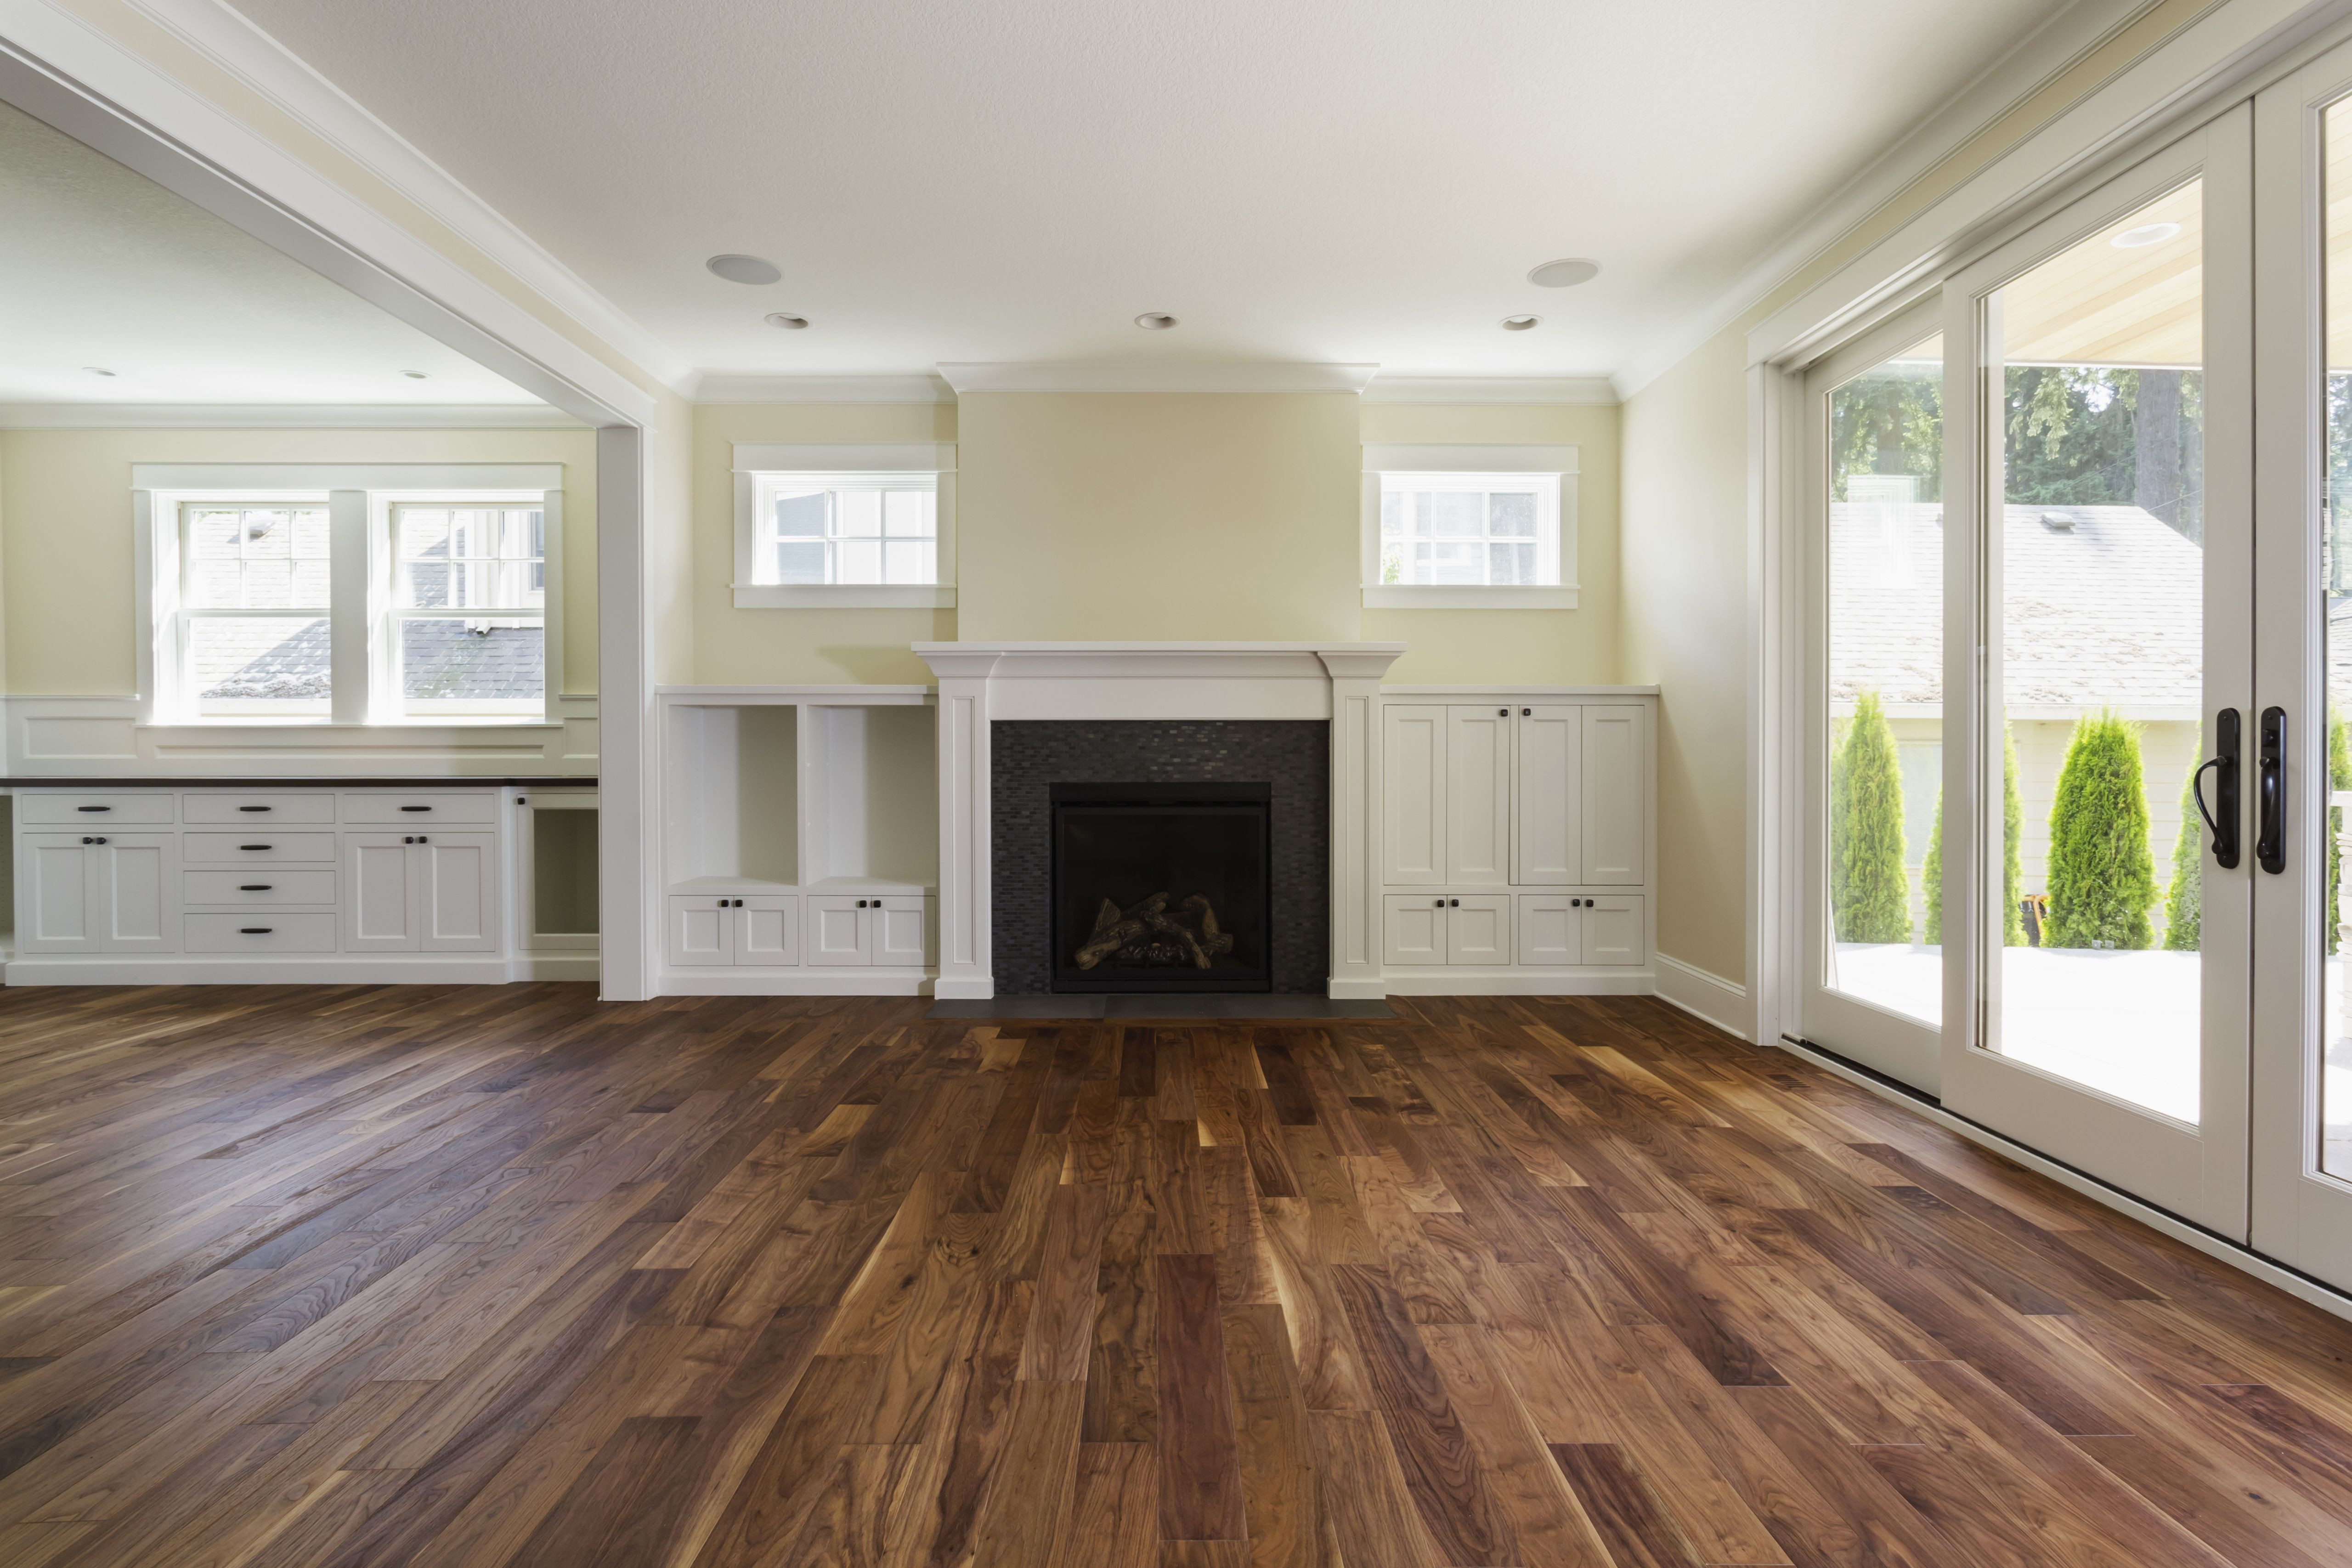 prefinished hardwood flooring reviews of the pros and cons of prefinished hardwood flooring regarding fireplace and built in shelves in living room 482143011 57bef8e33df78cc16e035397